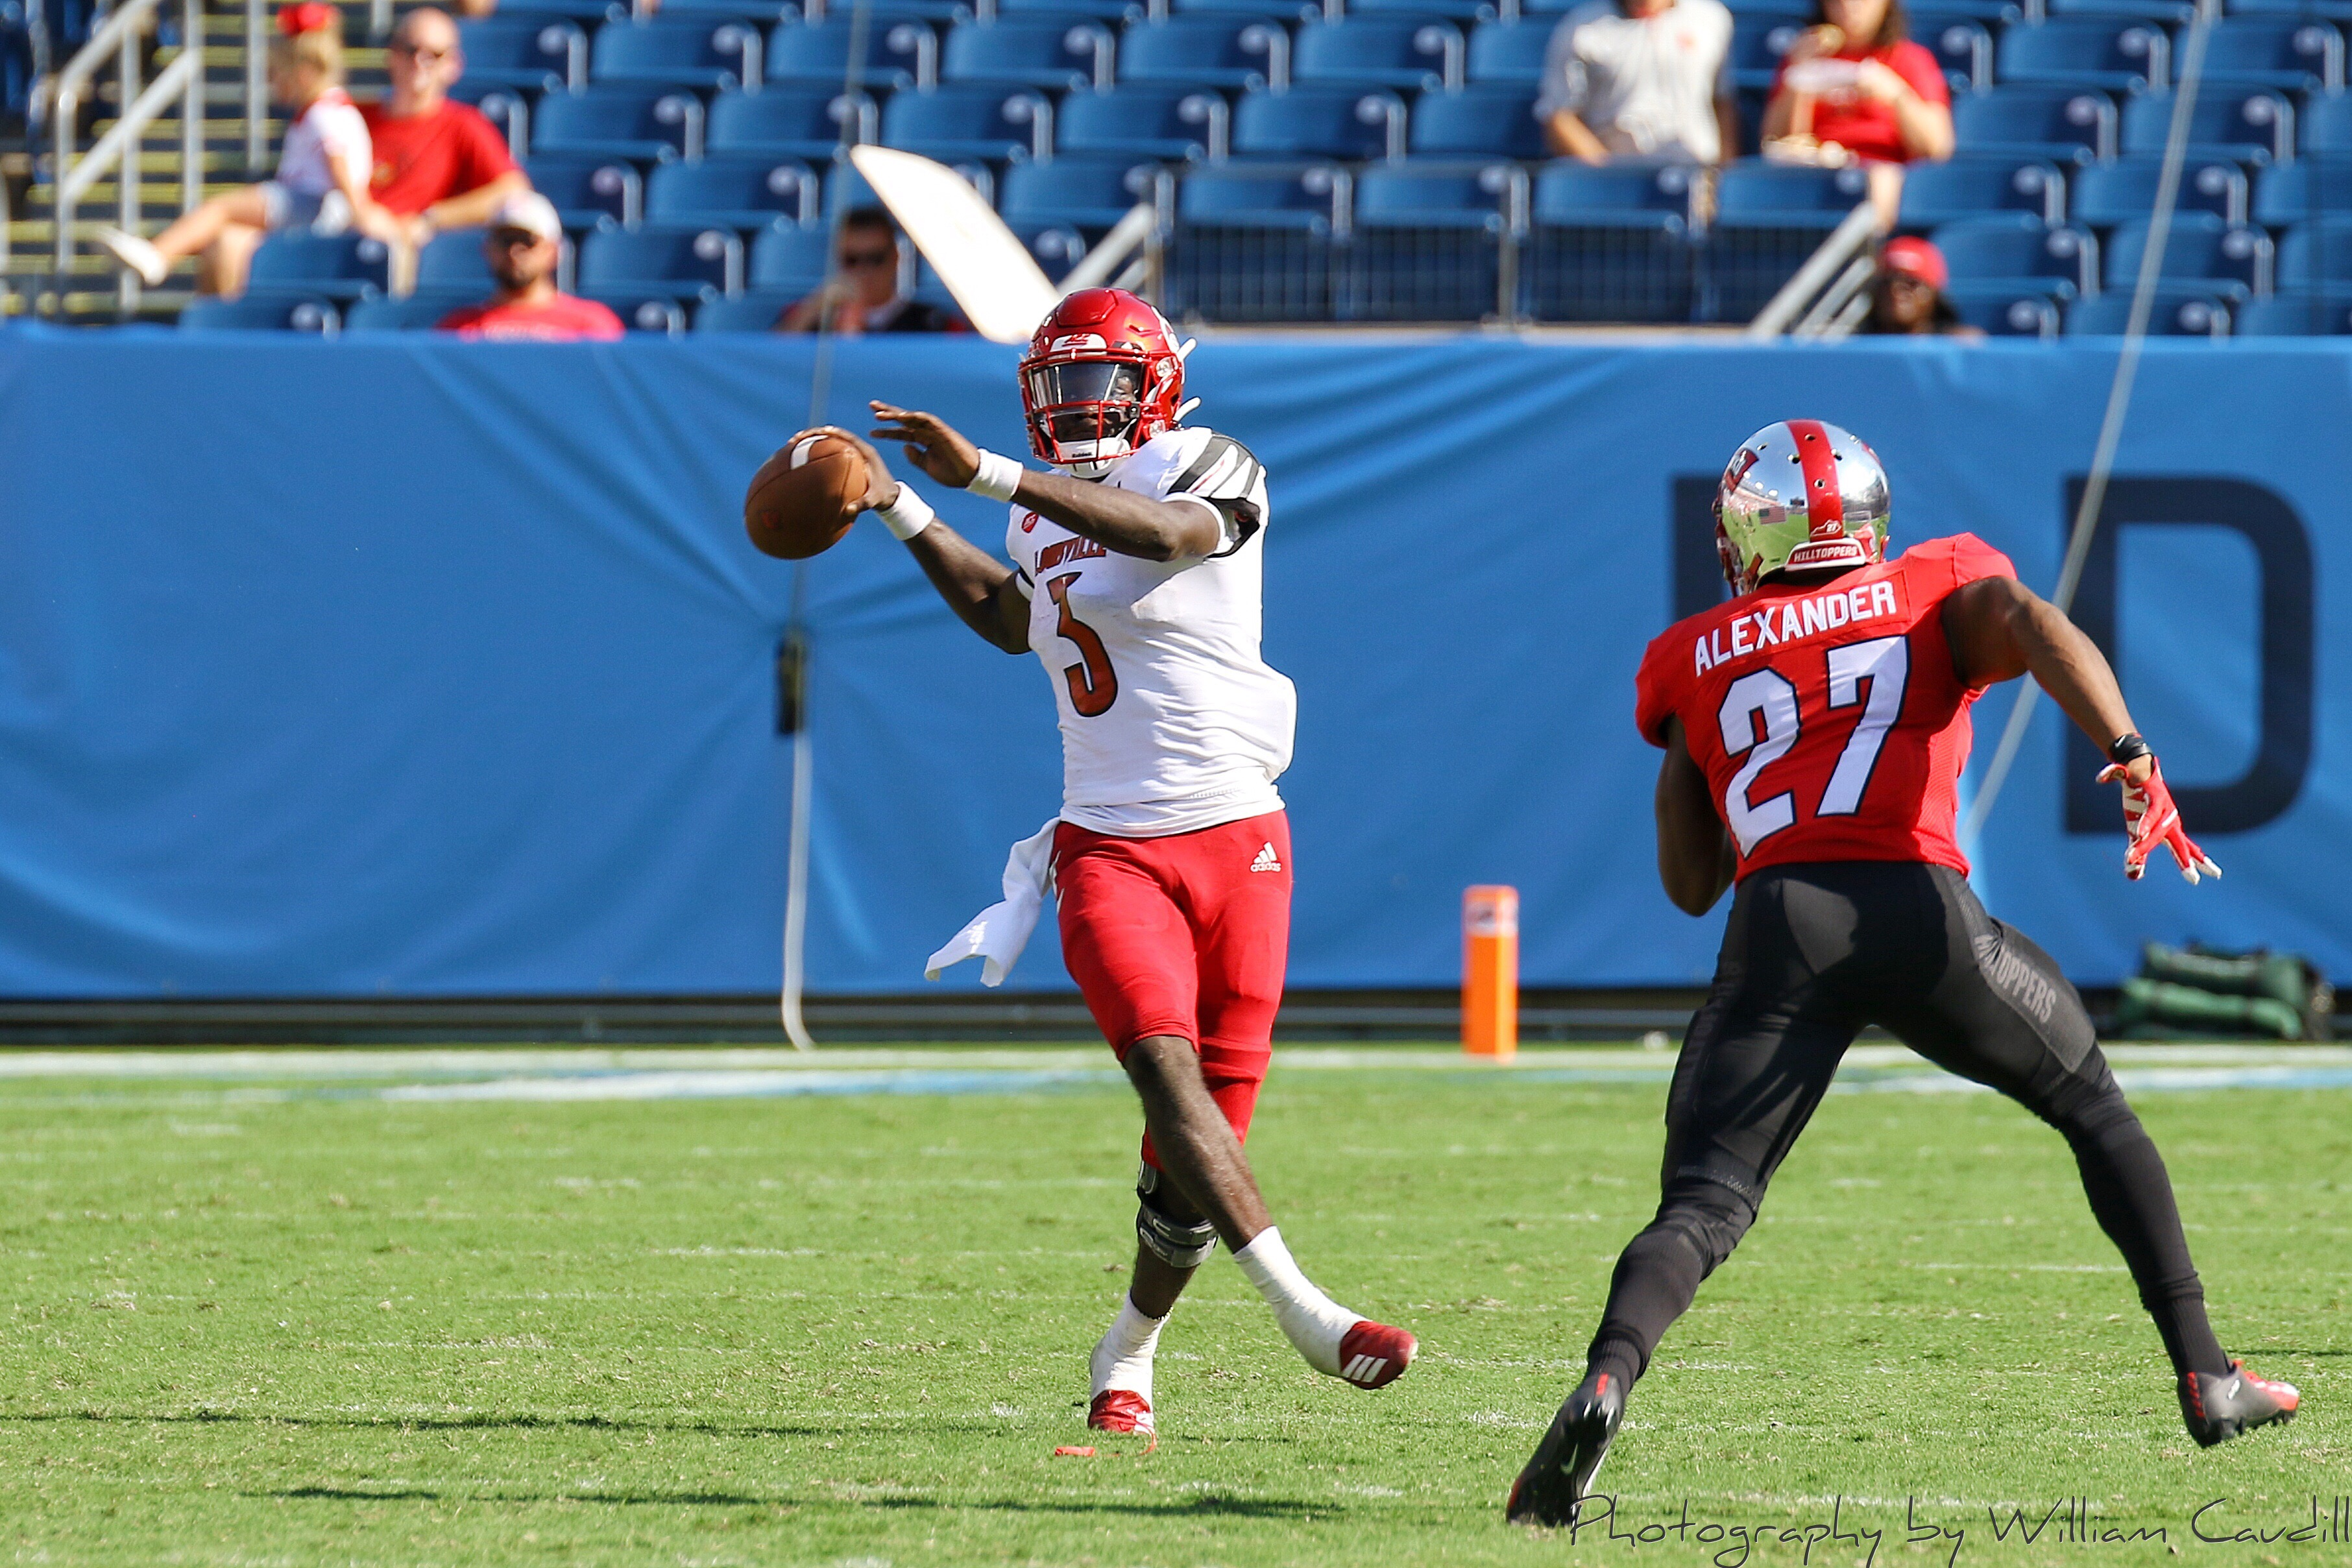 BISCUIT'S FIVE KEYS TO VICTORY vs. FLORIDA STATE